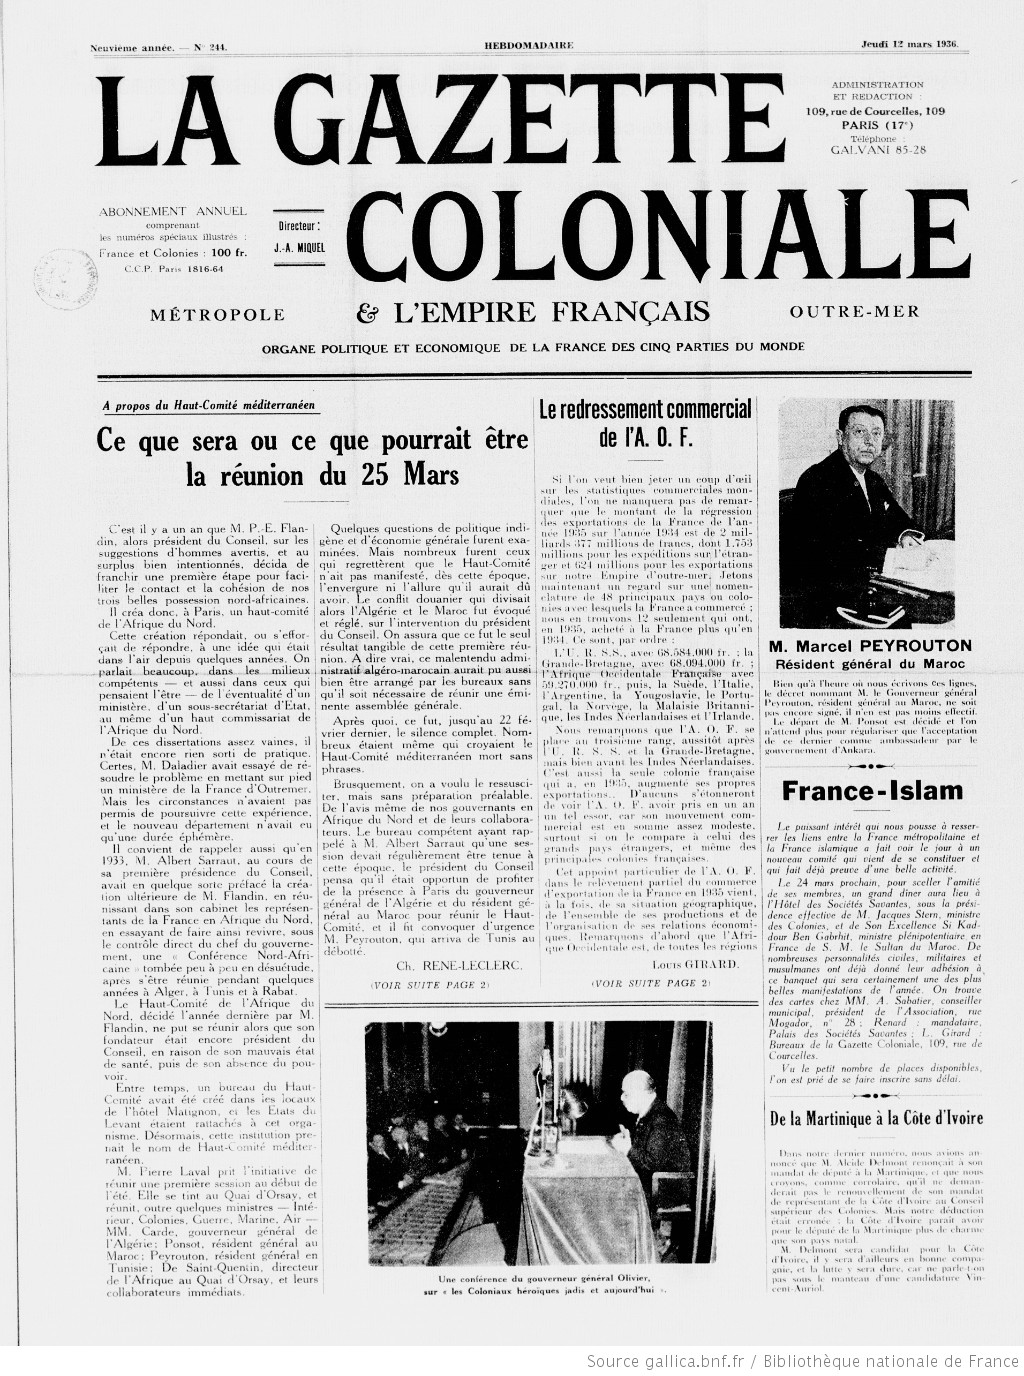 La Gazette coloniale [